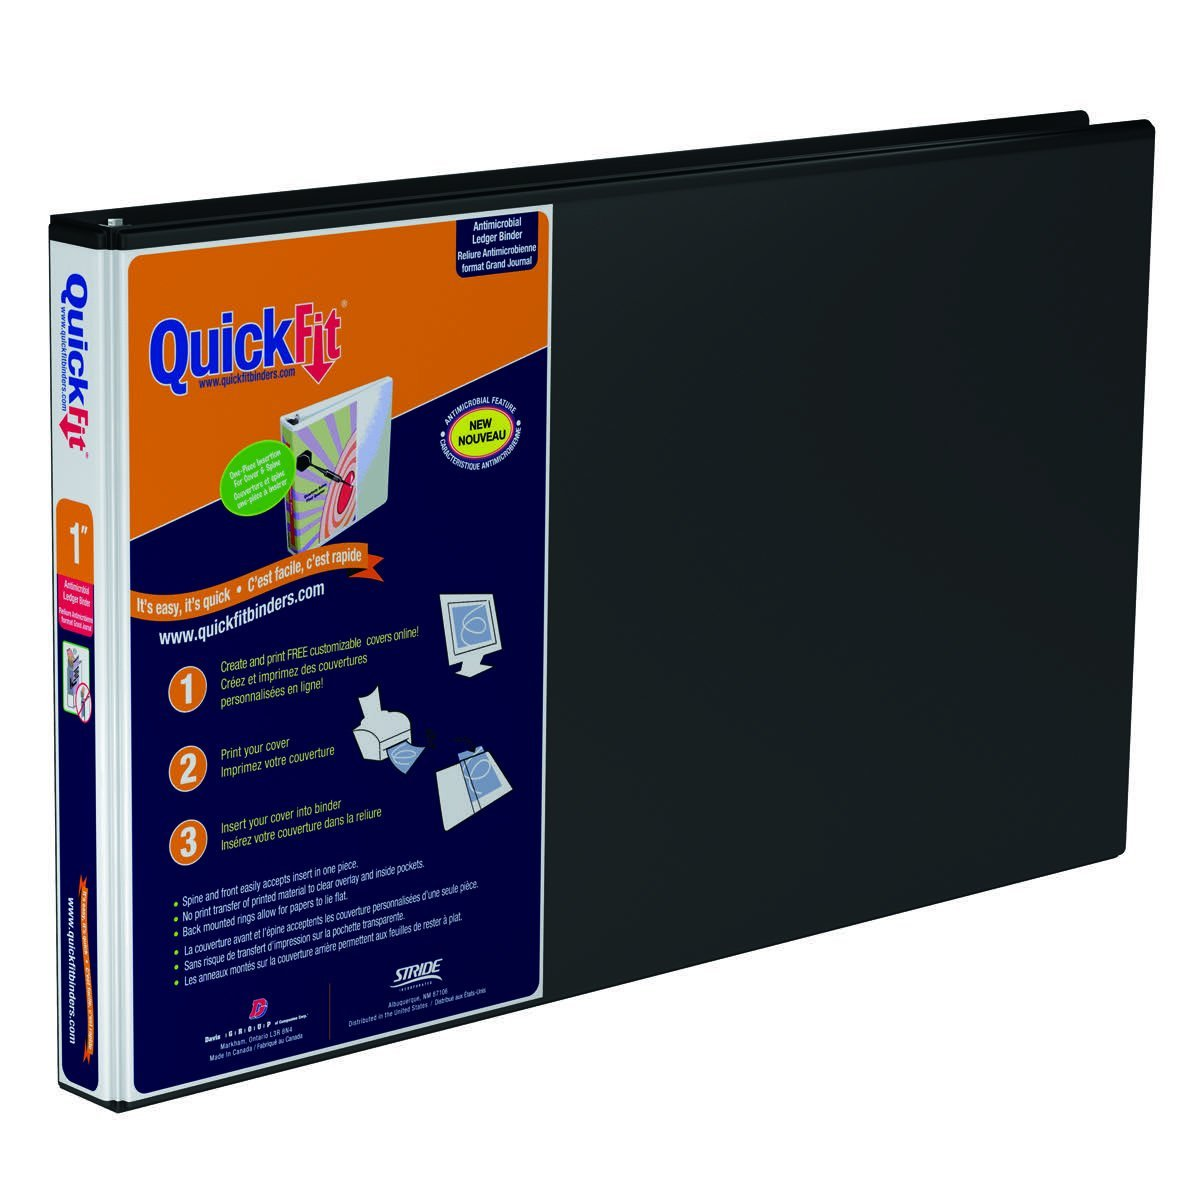 QuickFit Heavy Duty 11 x 17 Inch Landscape Spreadsheet View Binder, 1 Inch, Locking Angle D Ring, Black (94011)